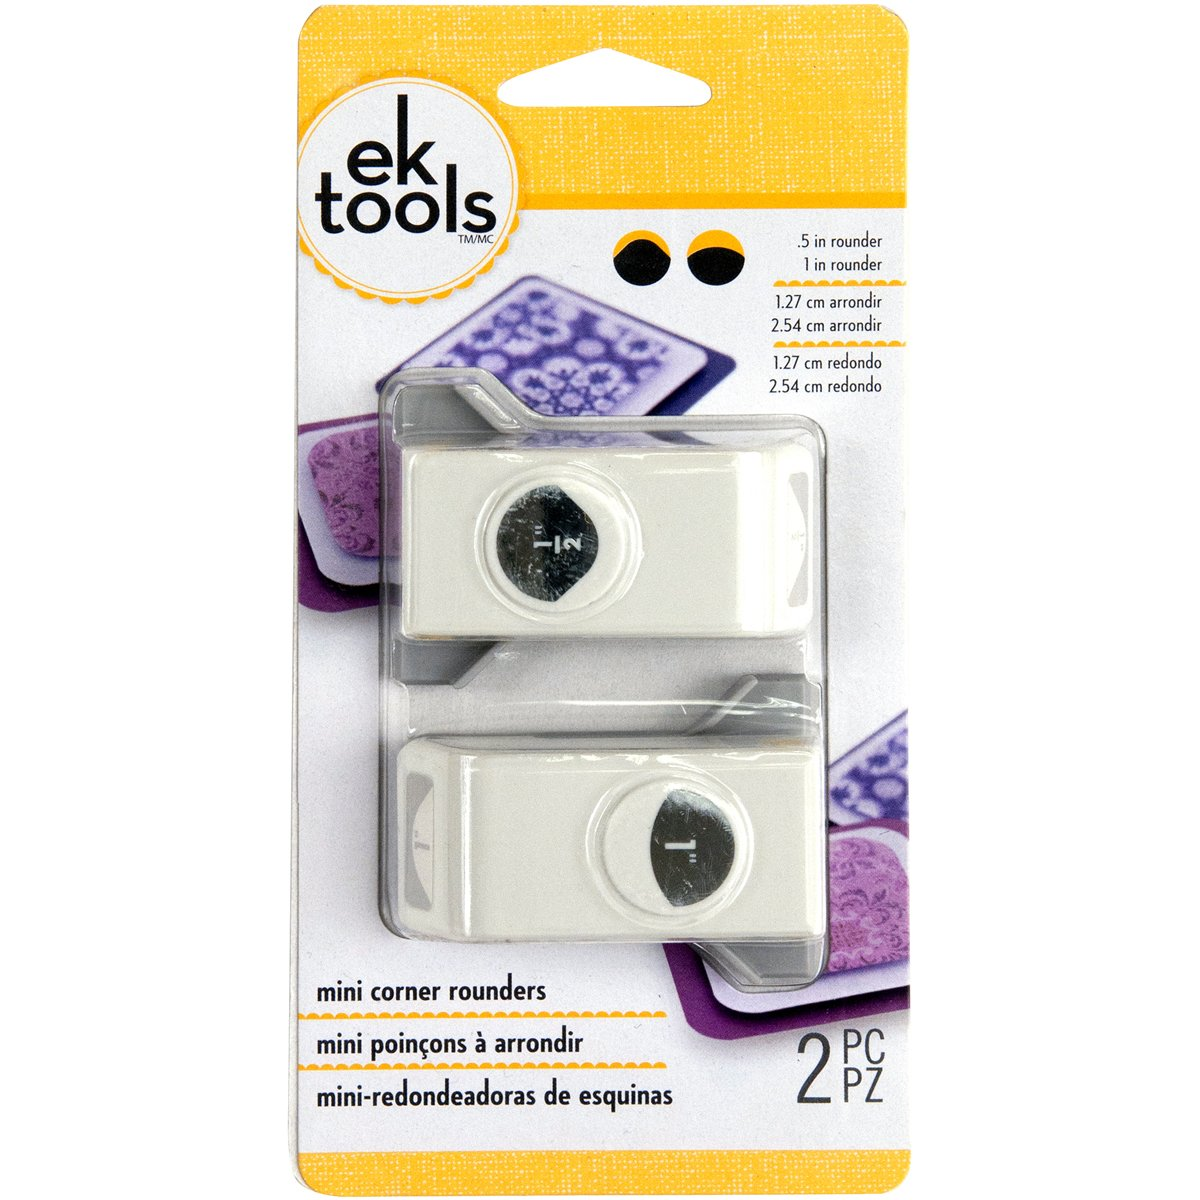 Ek Tools, set di mini timbri punch, Altro, Multicoloured, 3.9 x 10.89 x 19.78 cm EK Success 54-70026